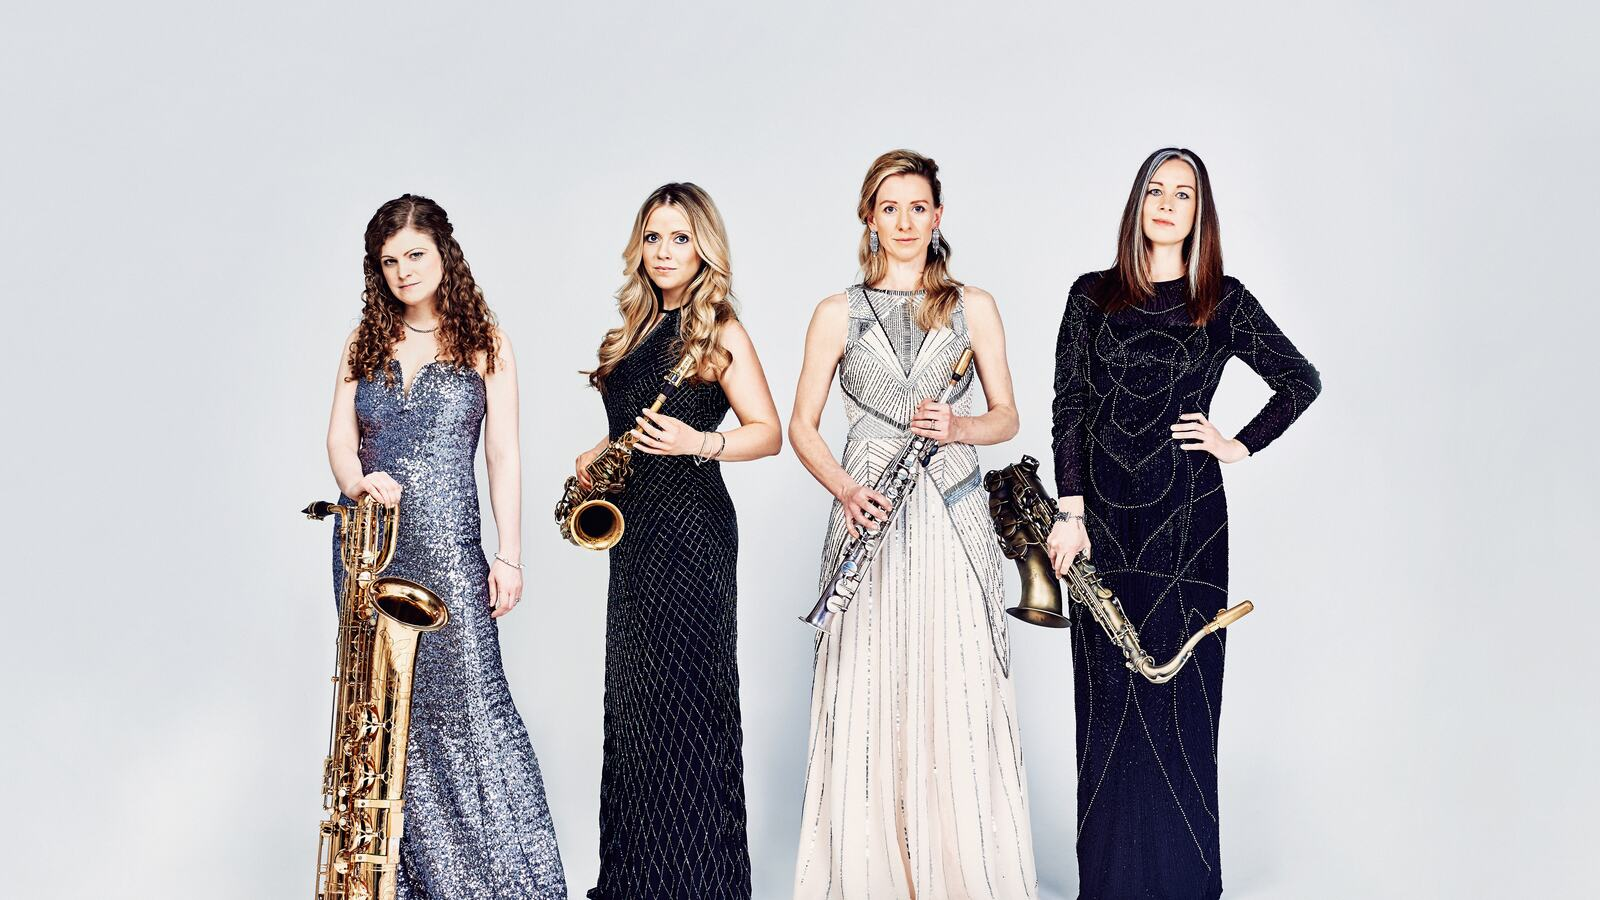 Photograph of the members of sax quartet Marici Saxes, who perform at Southbank Centre